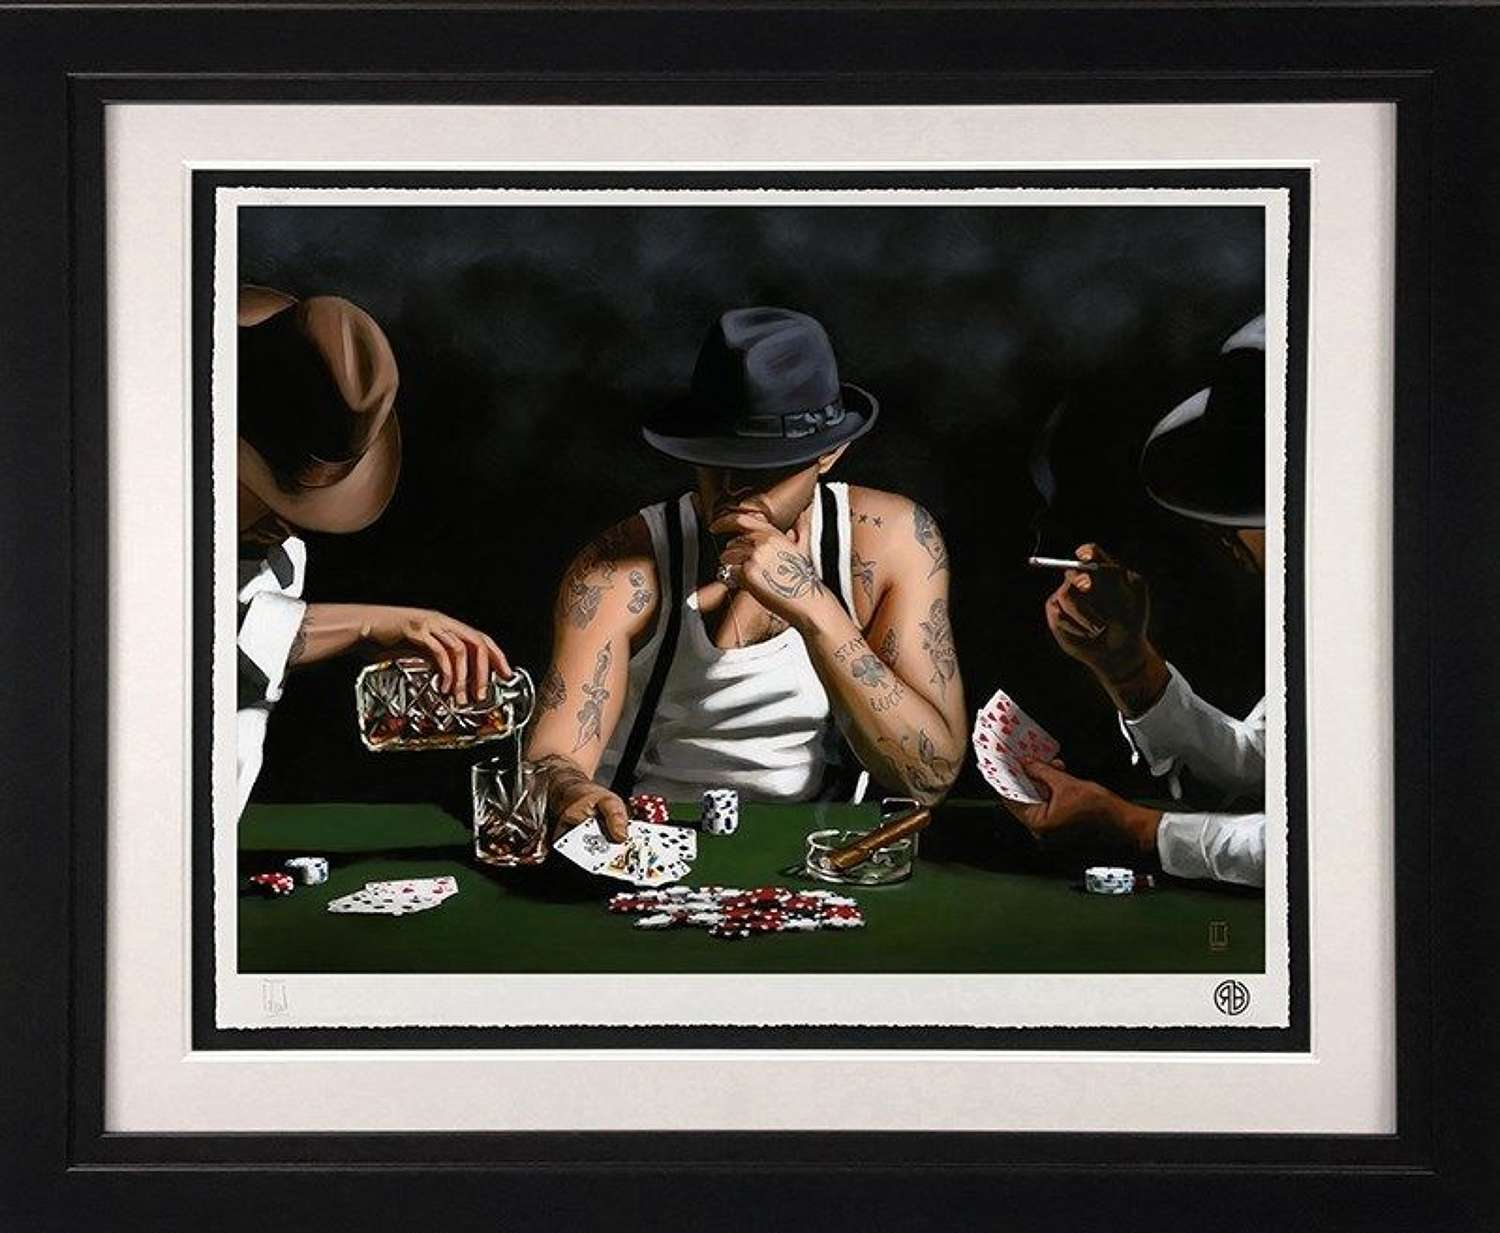 Stay Lucky - Framed Art Print by Richard Blunt